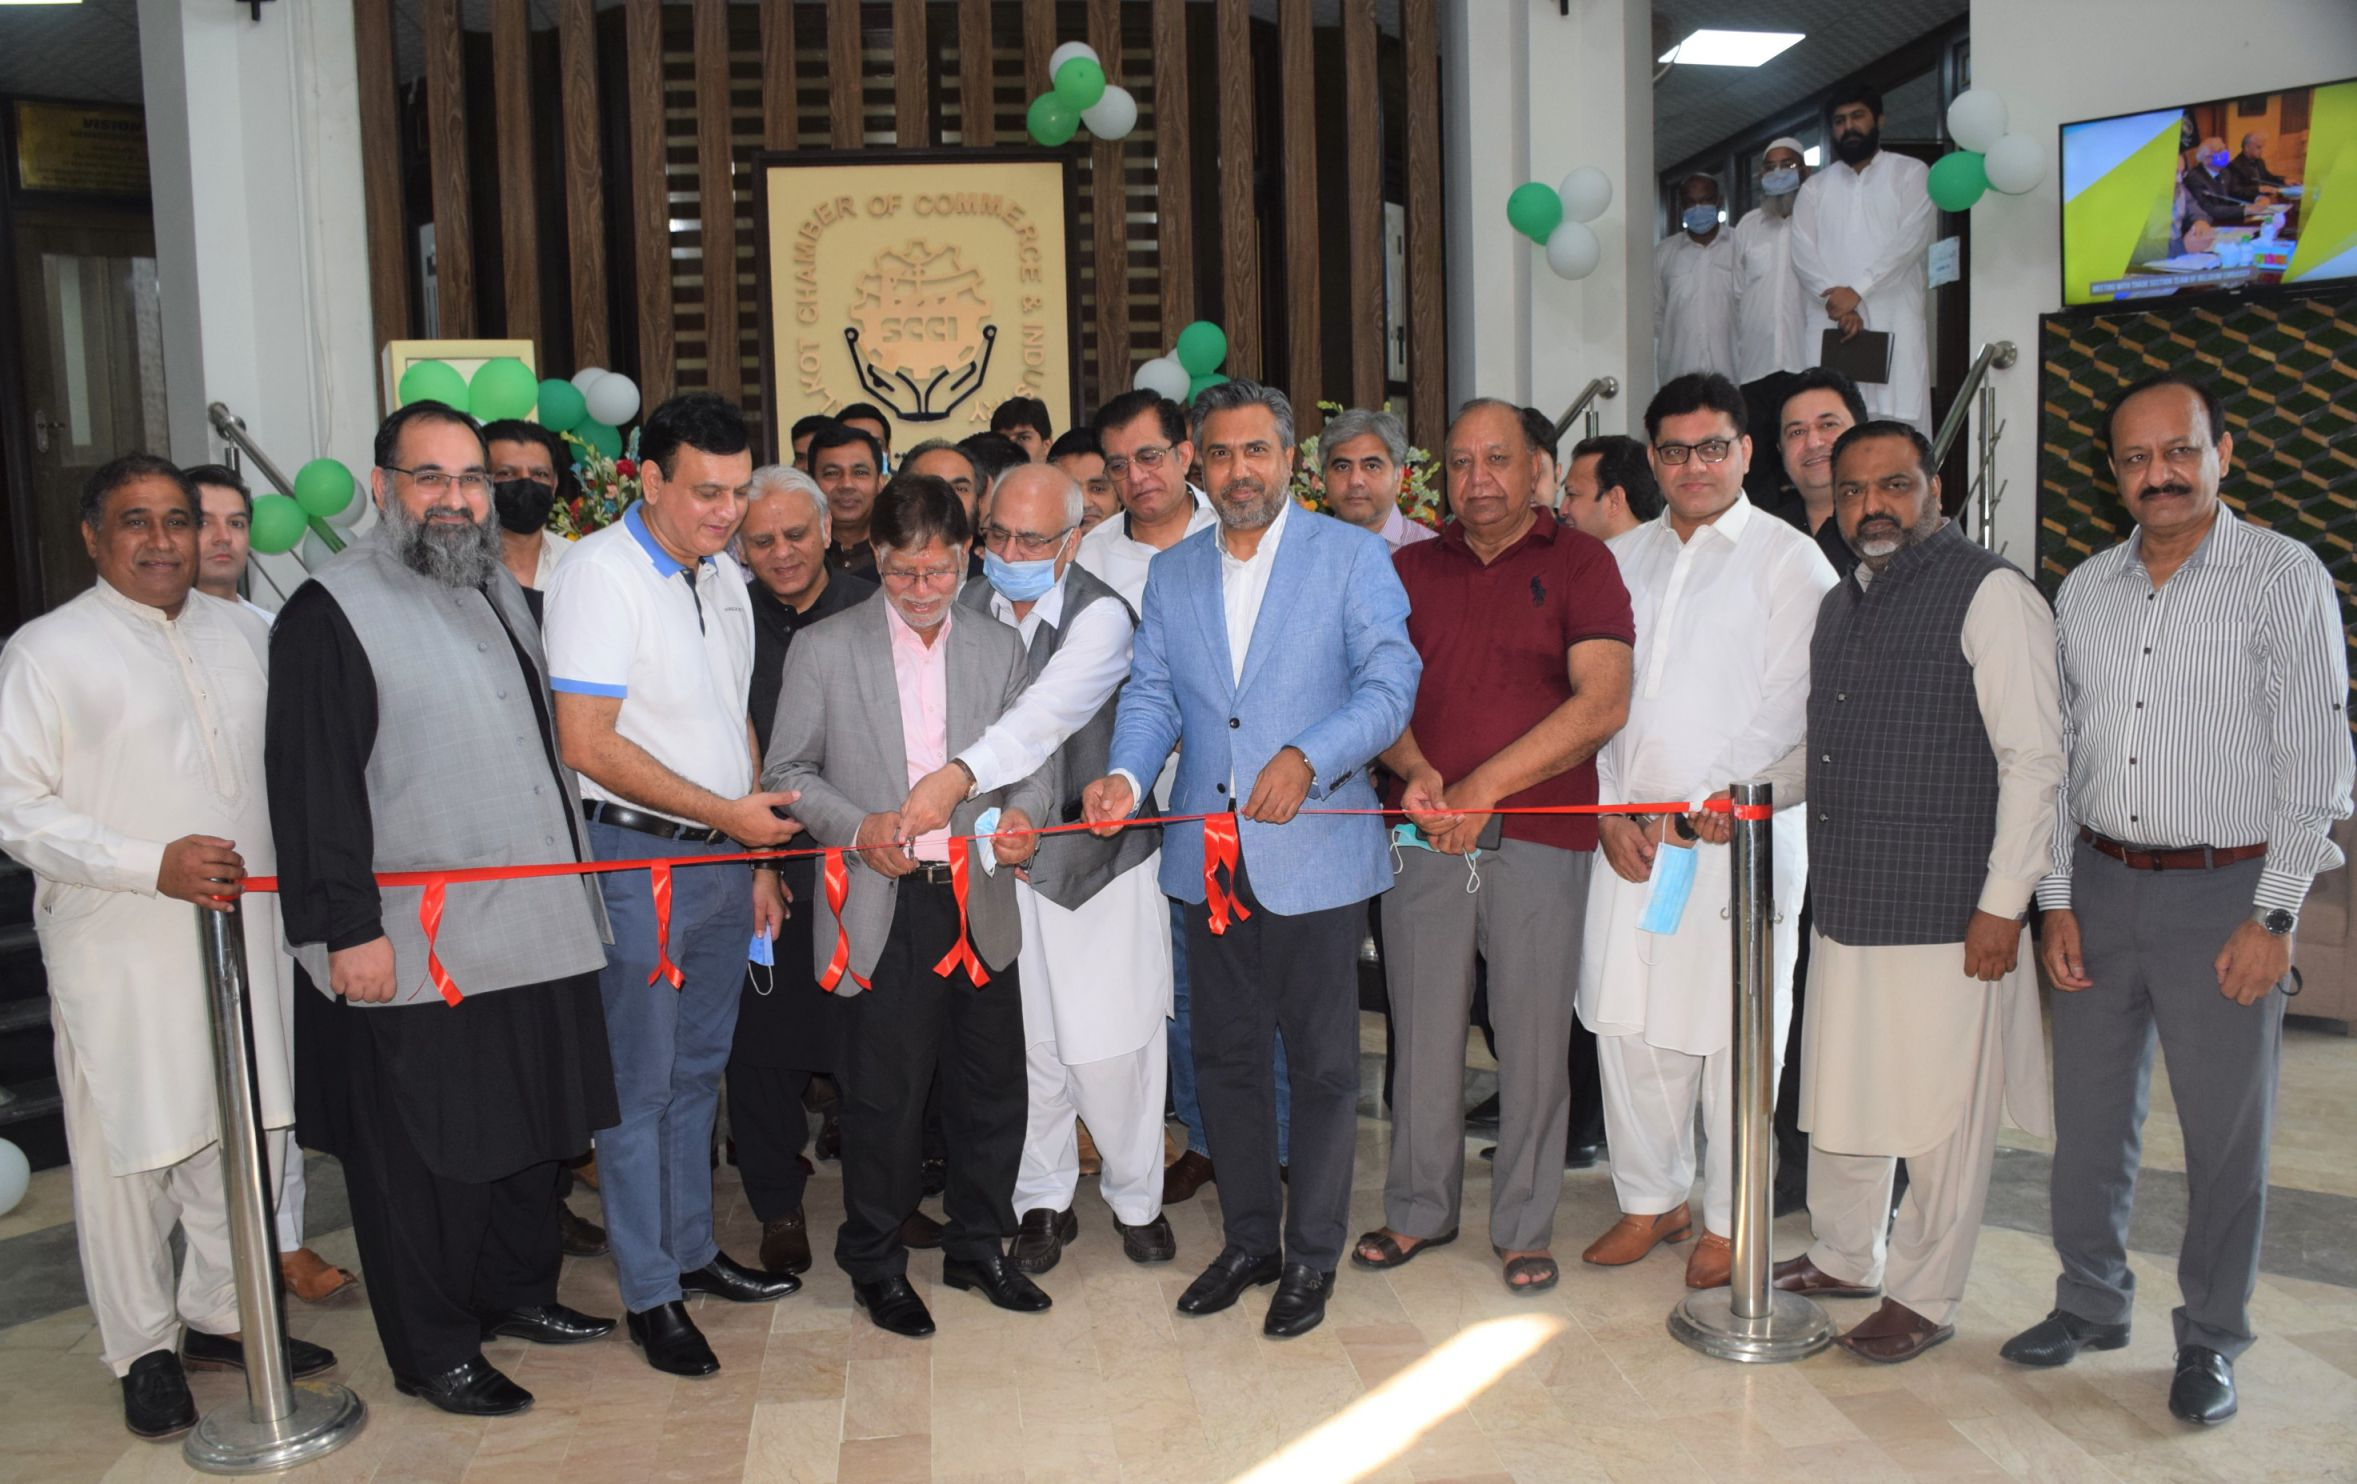 """On August 30, 2021, an inauguration ceremony of """"Establishment of Membership Department, Conference room for online meetings and Dining Hall"""" was held at Sialkot Chamber of Commerce & Industry. The Program commenced with the ribbon cutting by Mr. Sheikh Riaz ud Din, Mr. Qaisar Iqbal Baryar, President, Mr. Khuram Aslam, Senior Vice President, Mr. Ansar Aziz Puri, Vice President, Former Presidents and Members of Executive Committee, SCCI.   President, SCCI thanked all the guests for gracing the occasion by their presence and said that the news departments would help in providing best services to the members."""